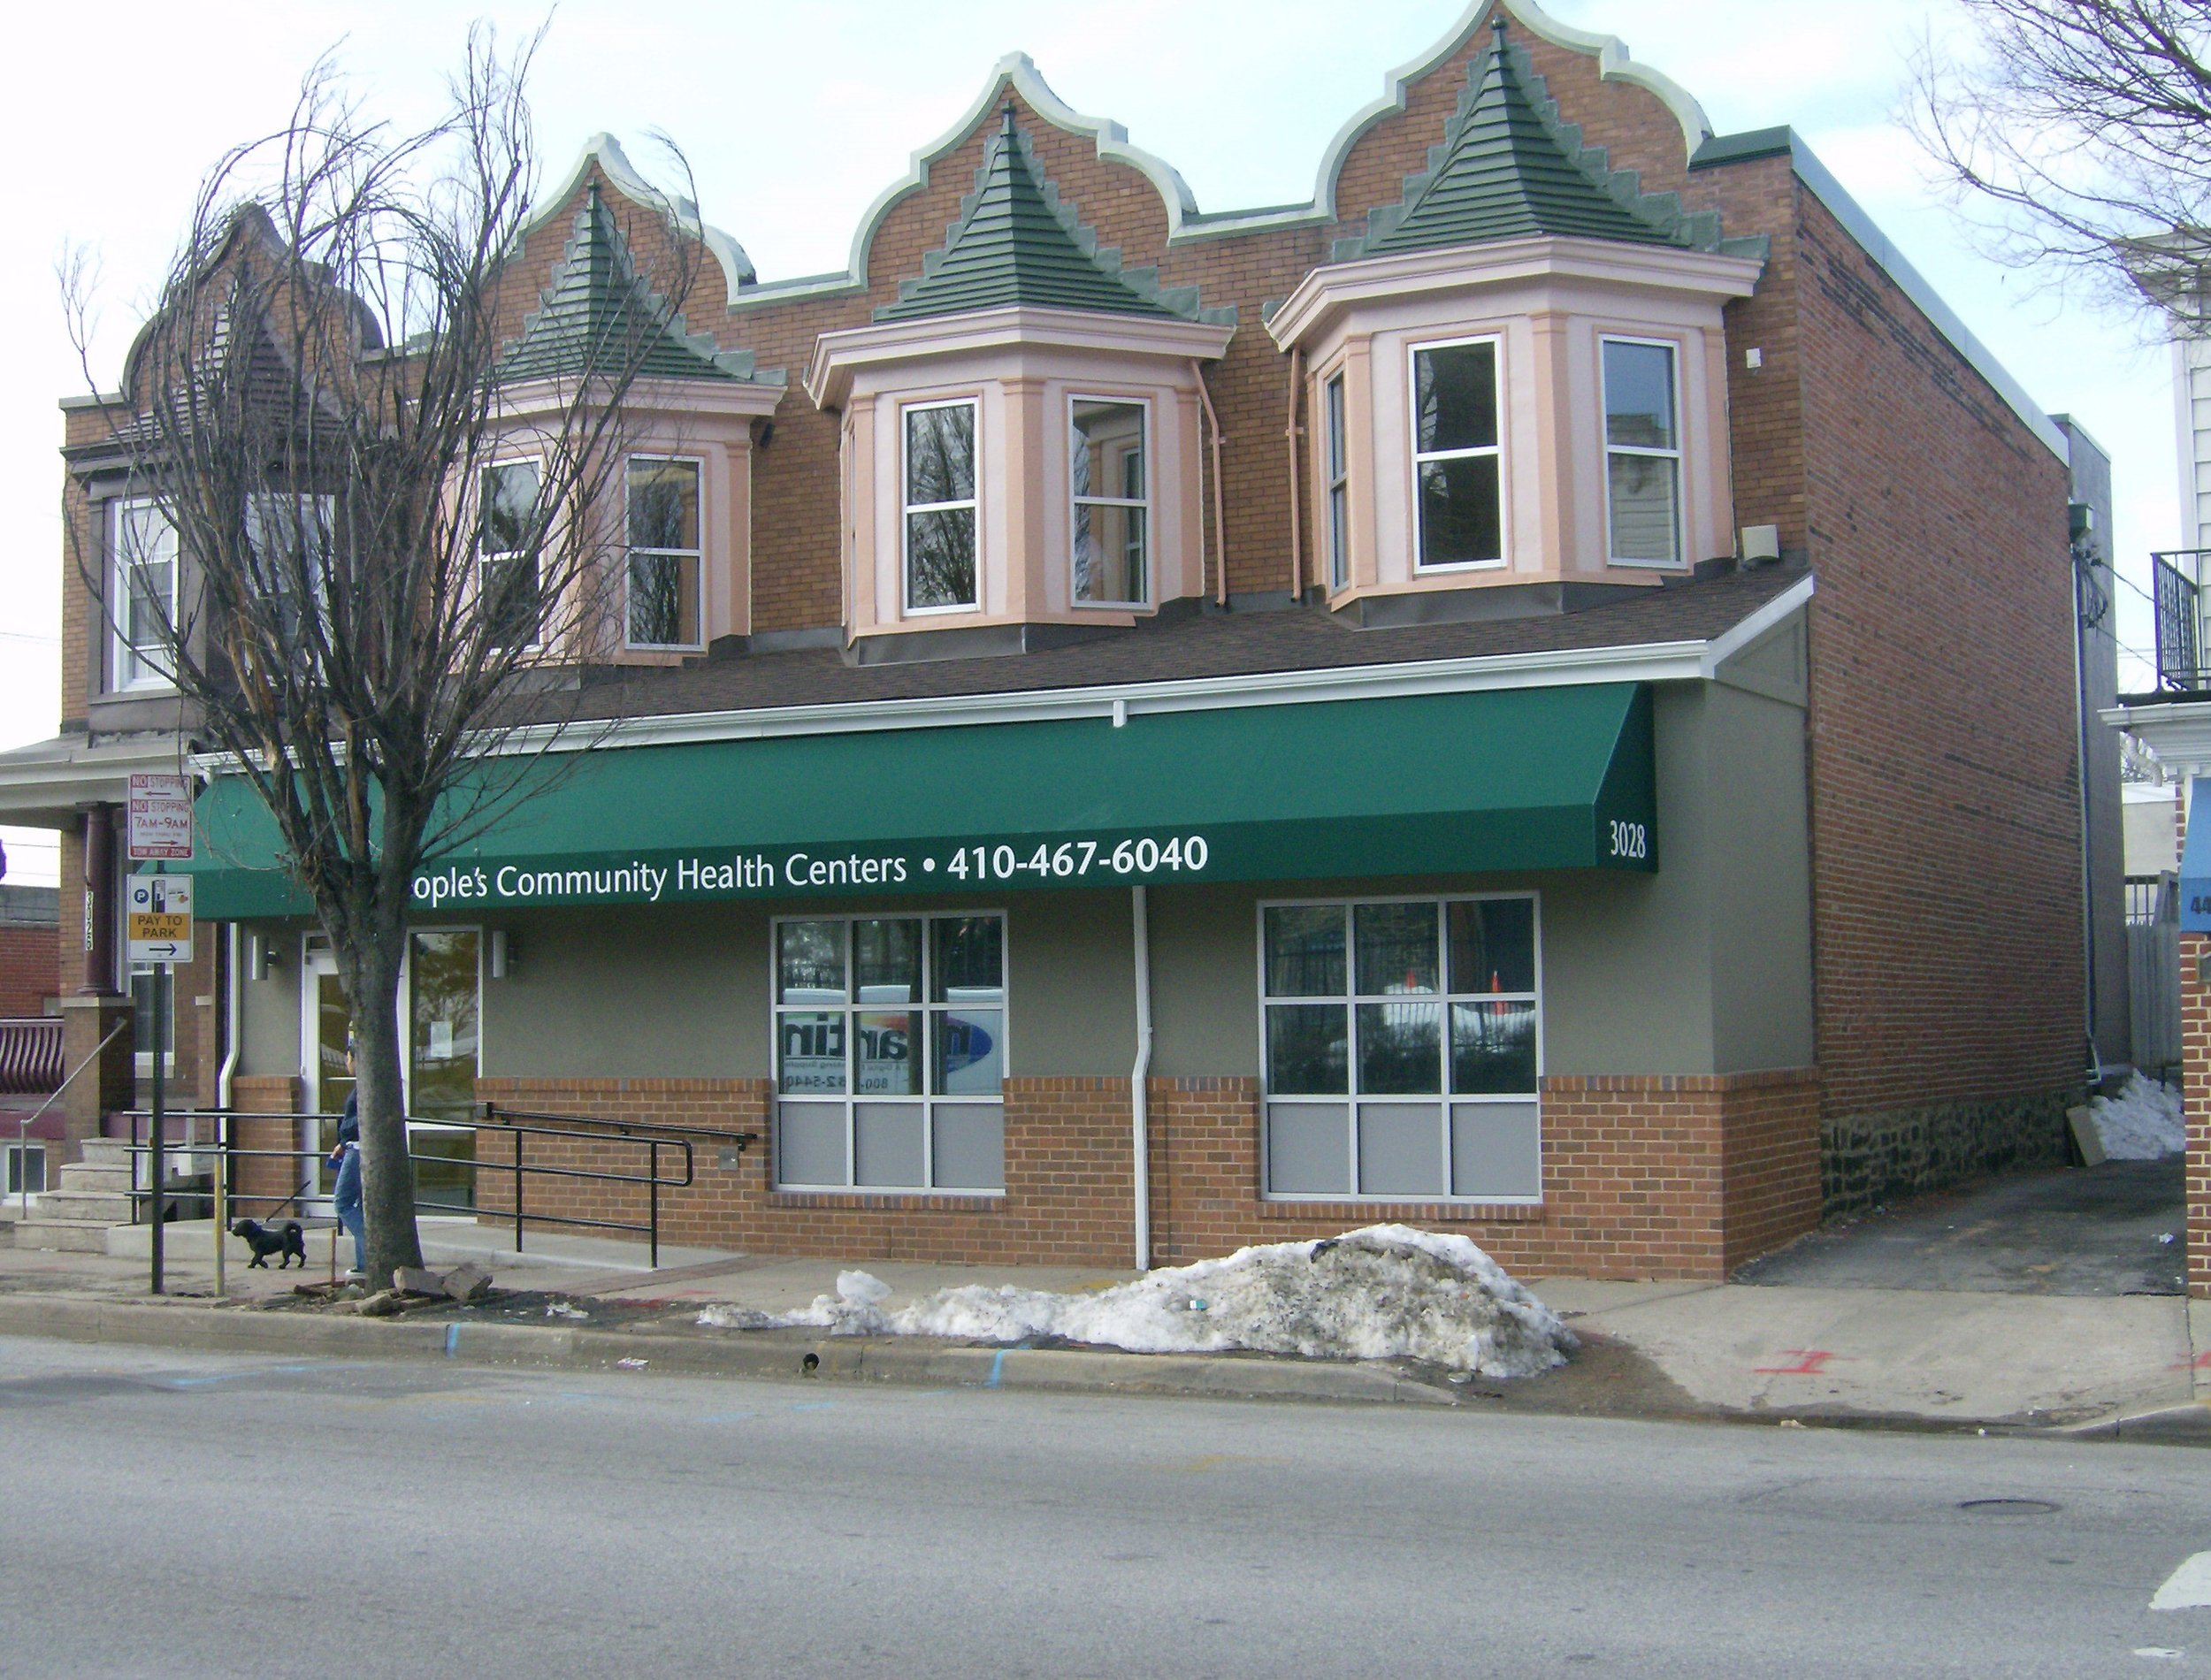 Peoples' Community Health Center